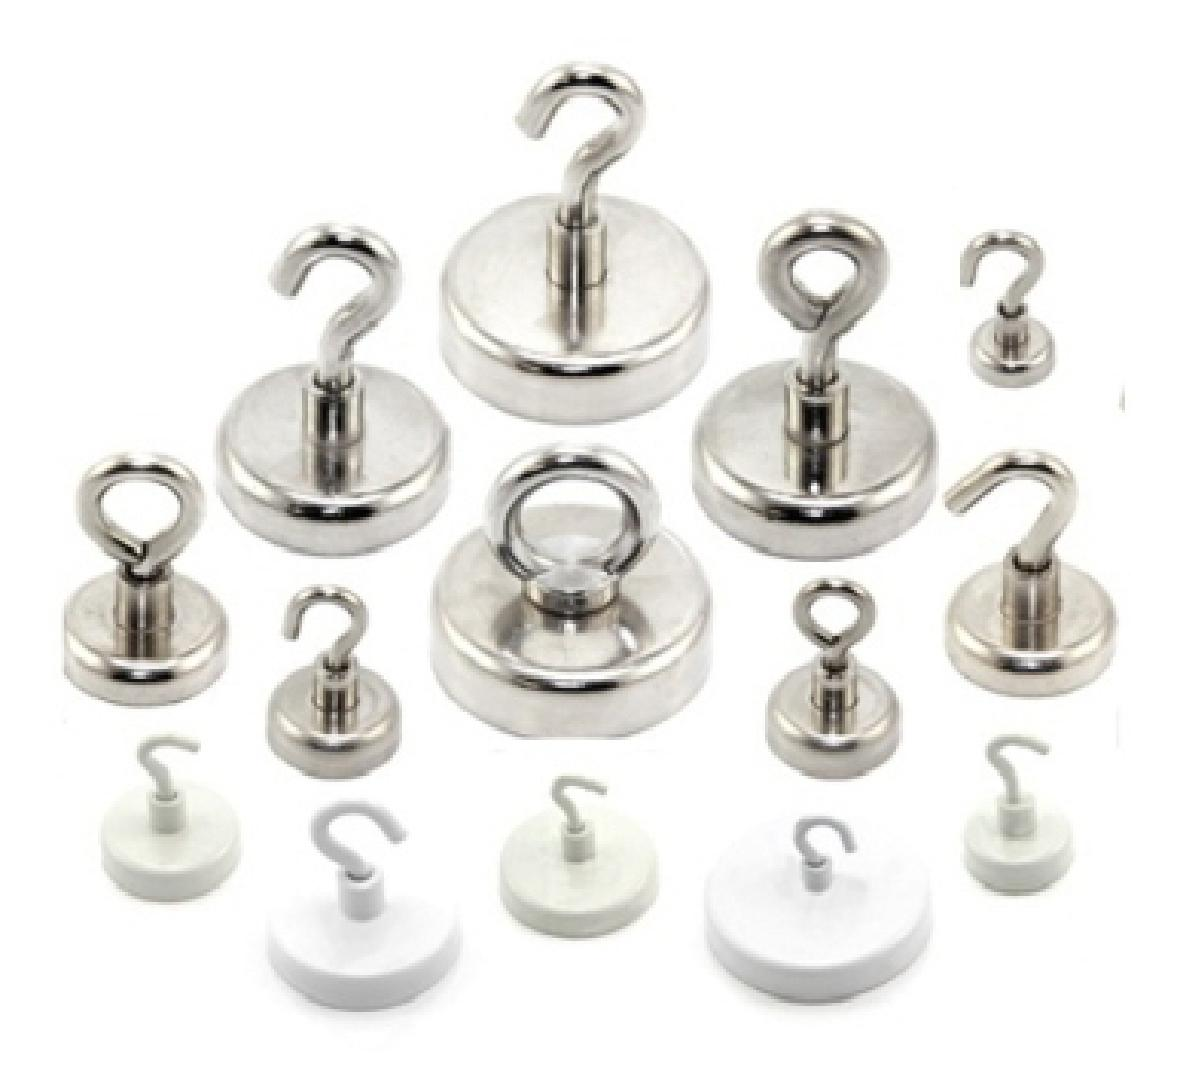 Neodymium Pot Magnets for Hooks or Eyelets